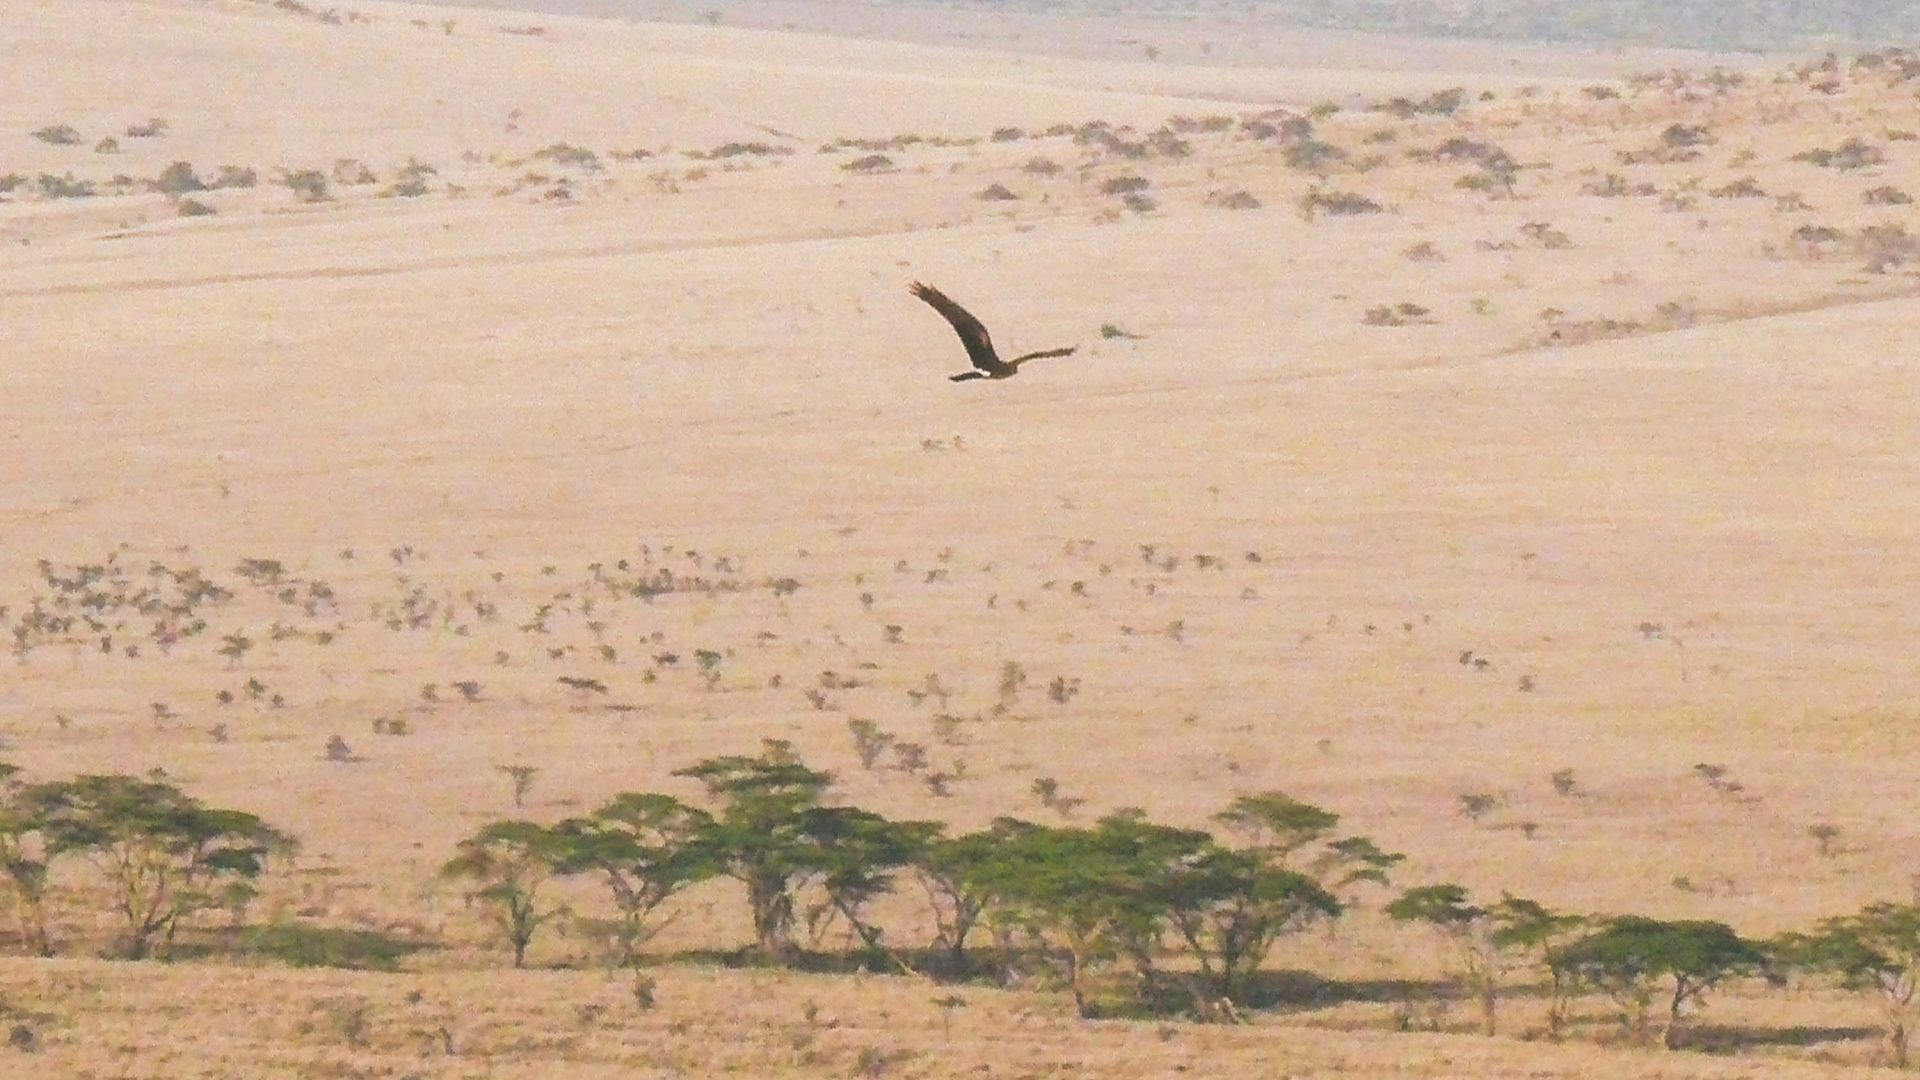 A bird flies over Samburu in the dry season.